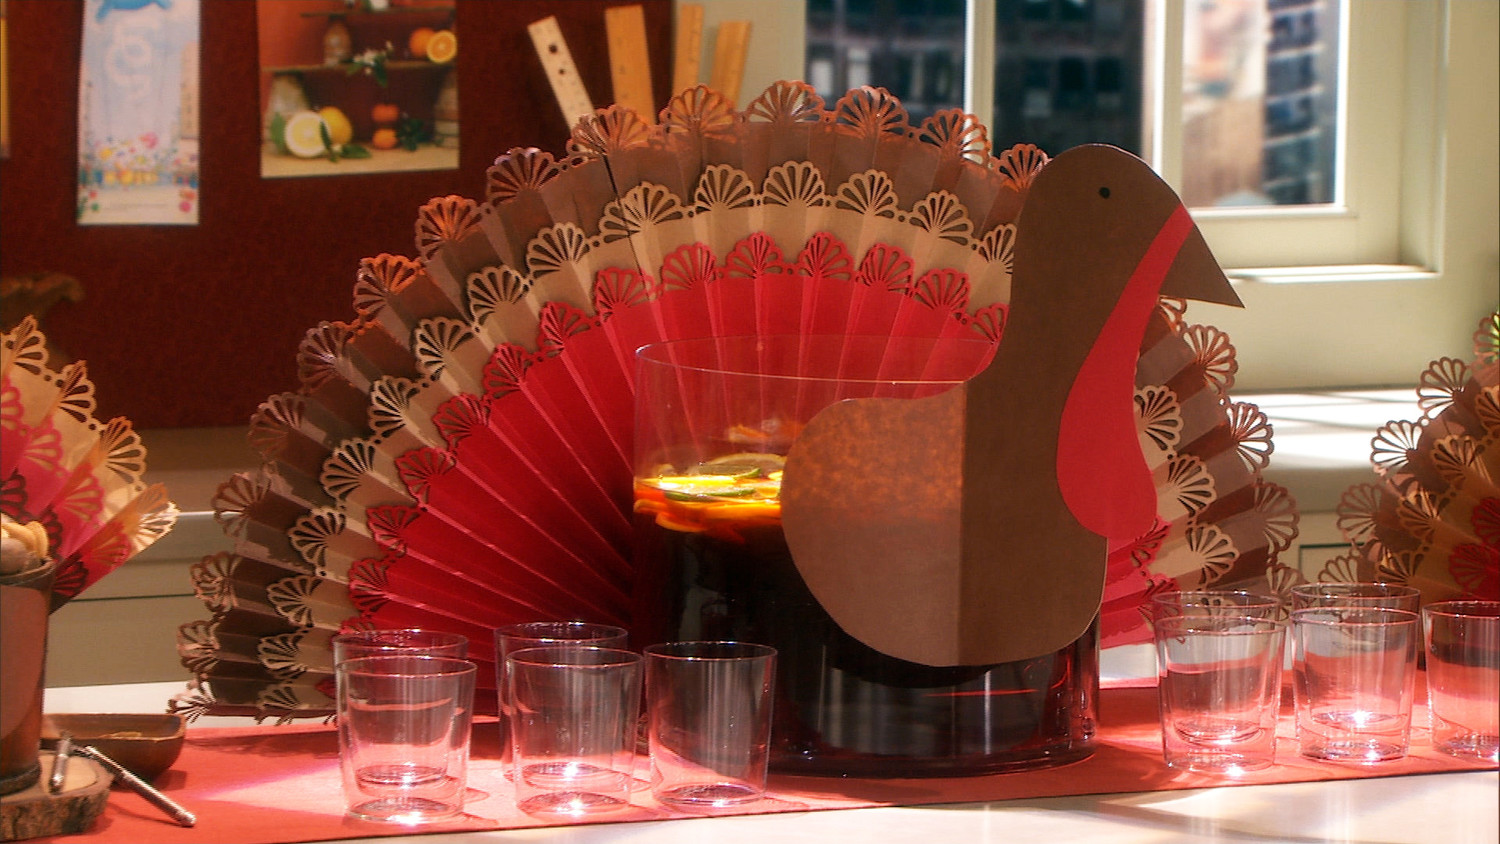 Thanksgiving turkey decor - Thanksgiving Turkey Decor 20